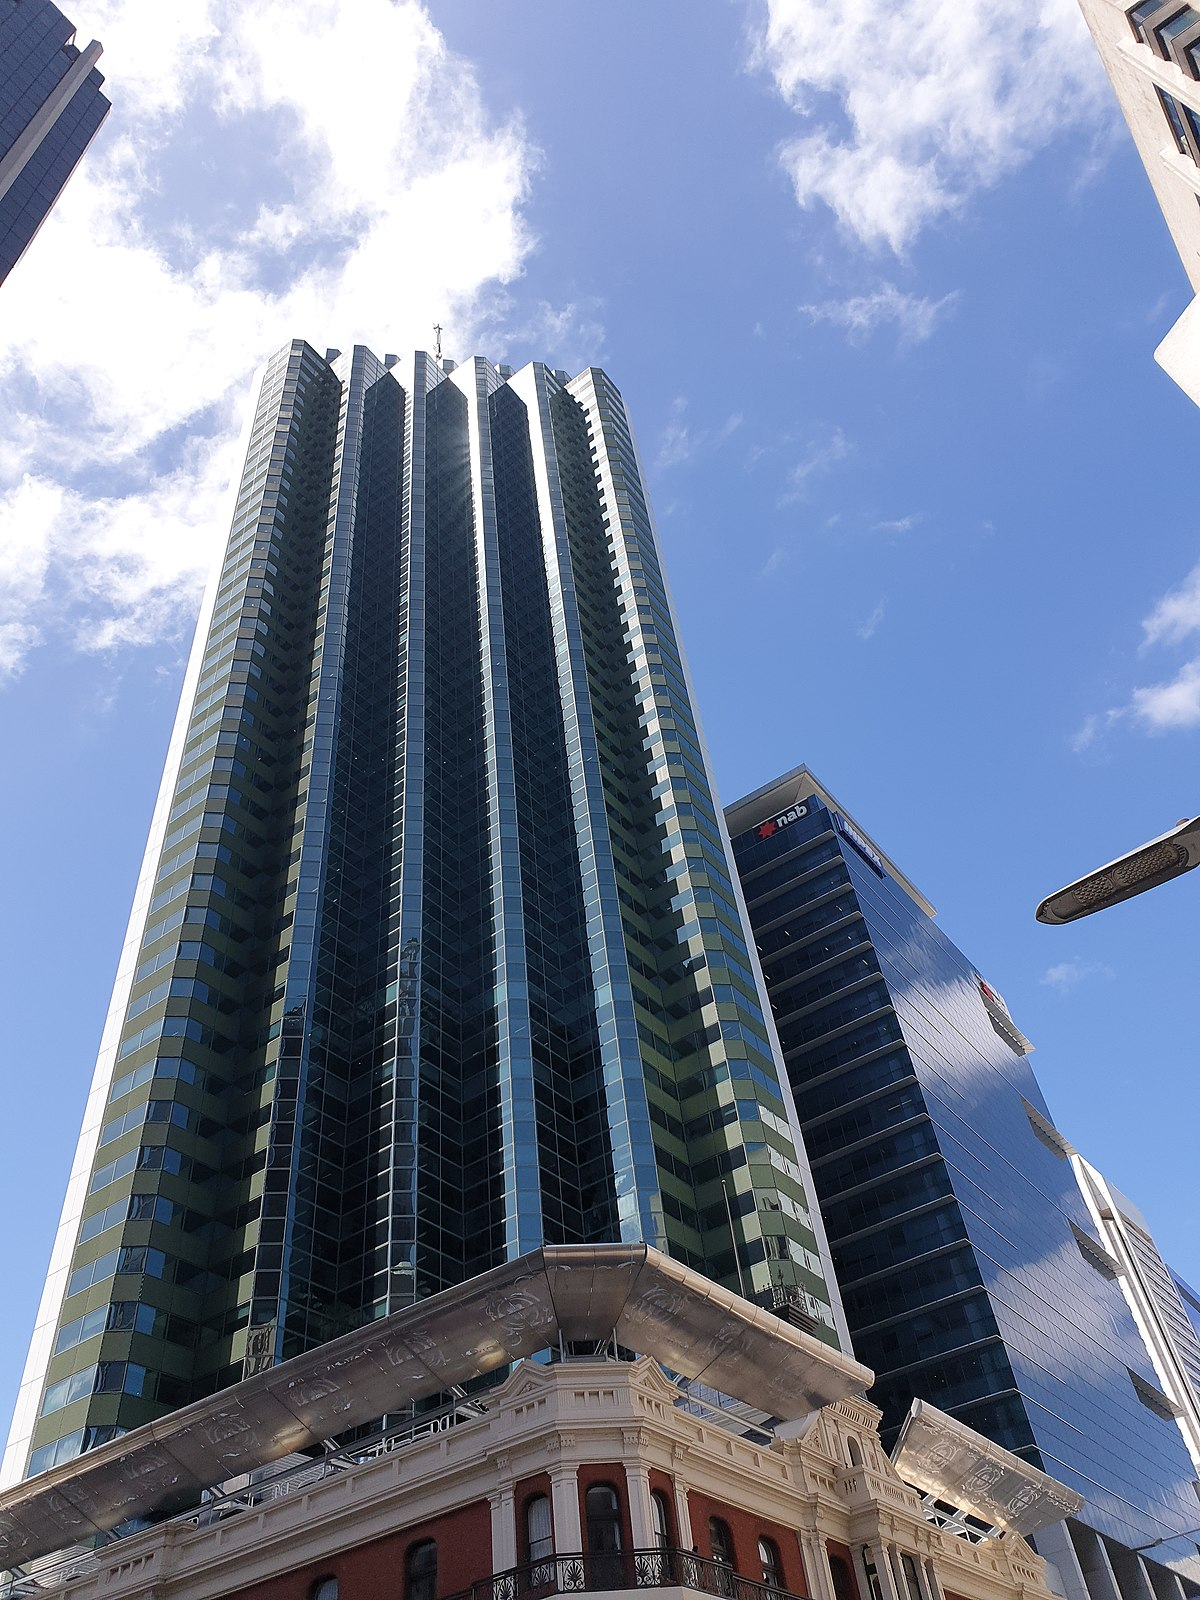 5bd7ed04a2 108 St Georges Terrace - Wikipedia